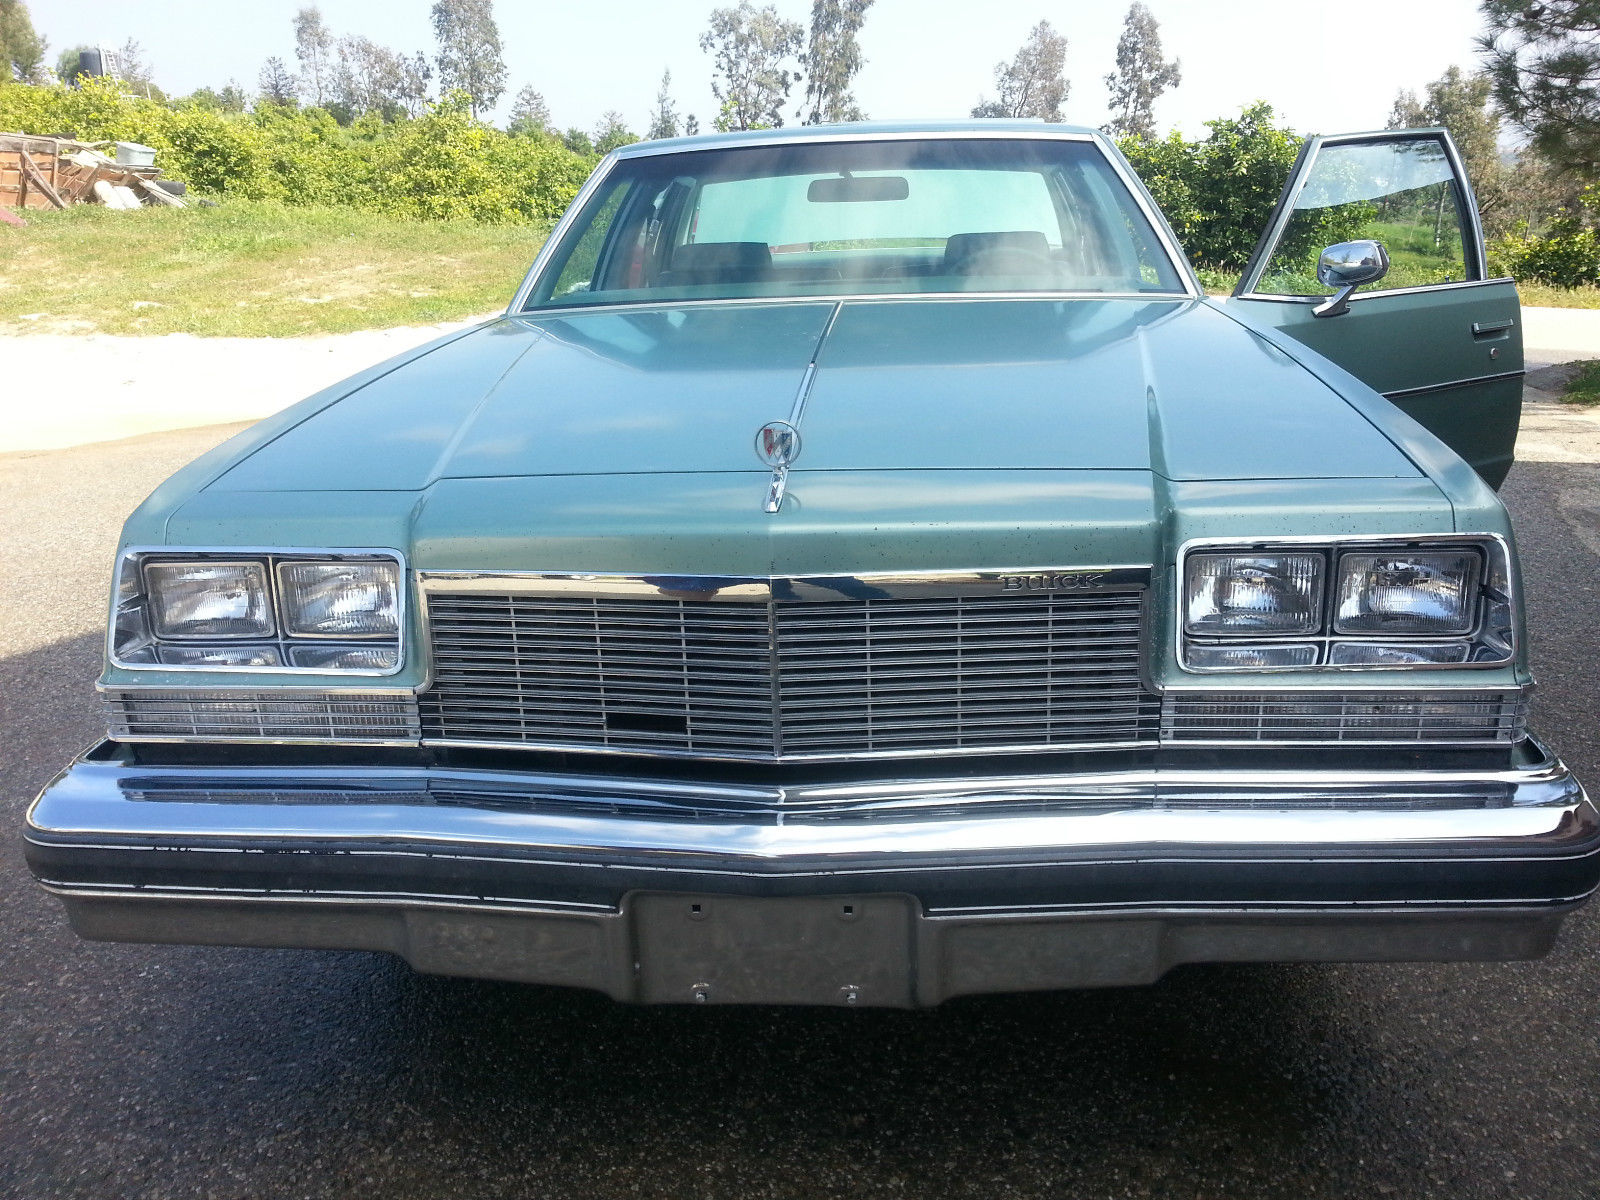 All American Classic Cars: 1977 Buick LeSabre 4-Door Sedan